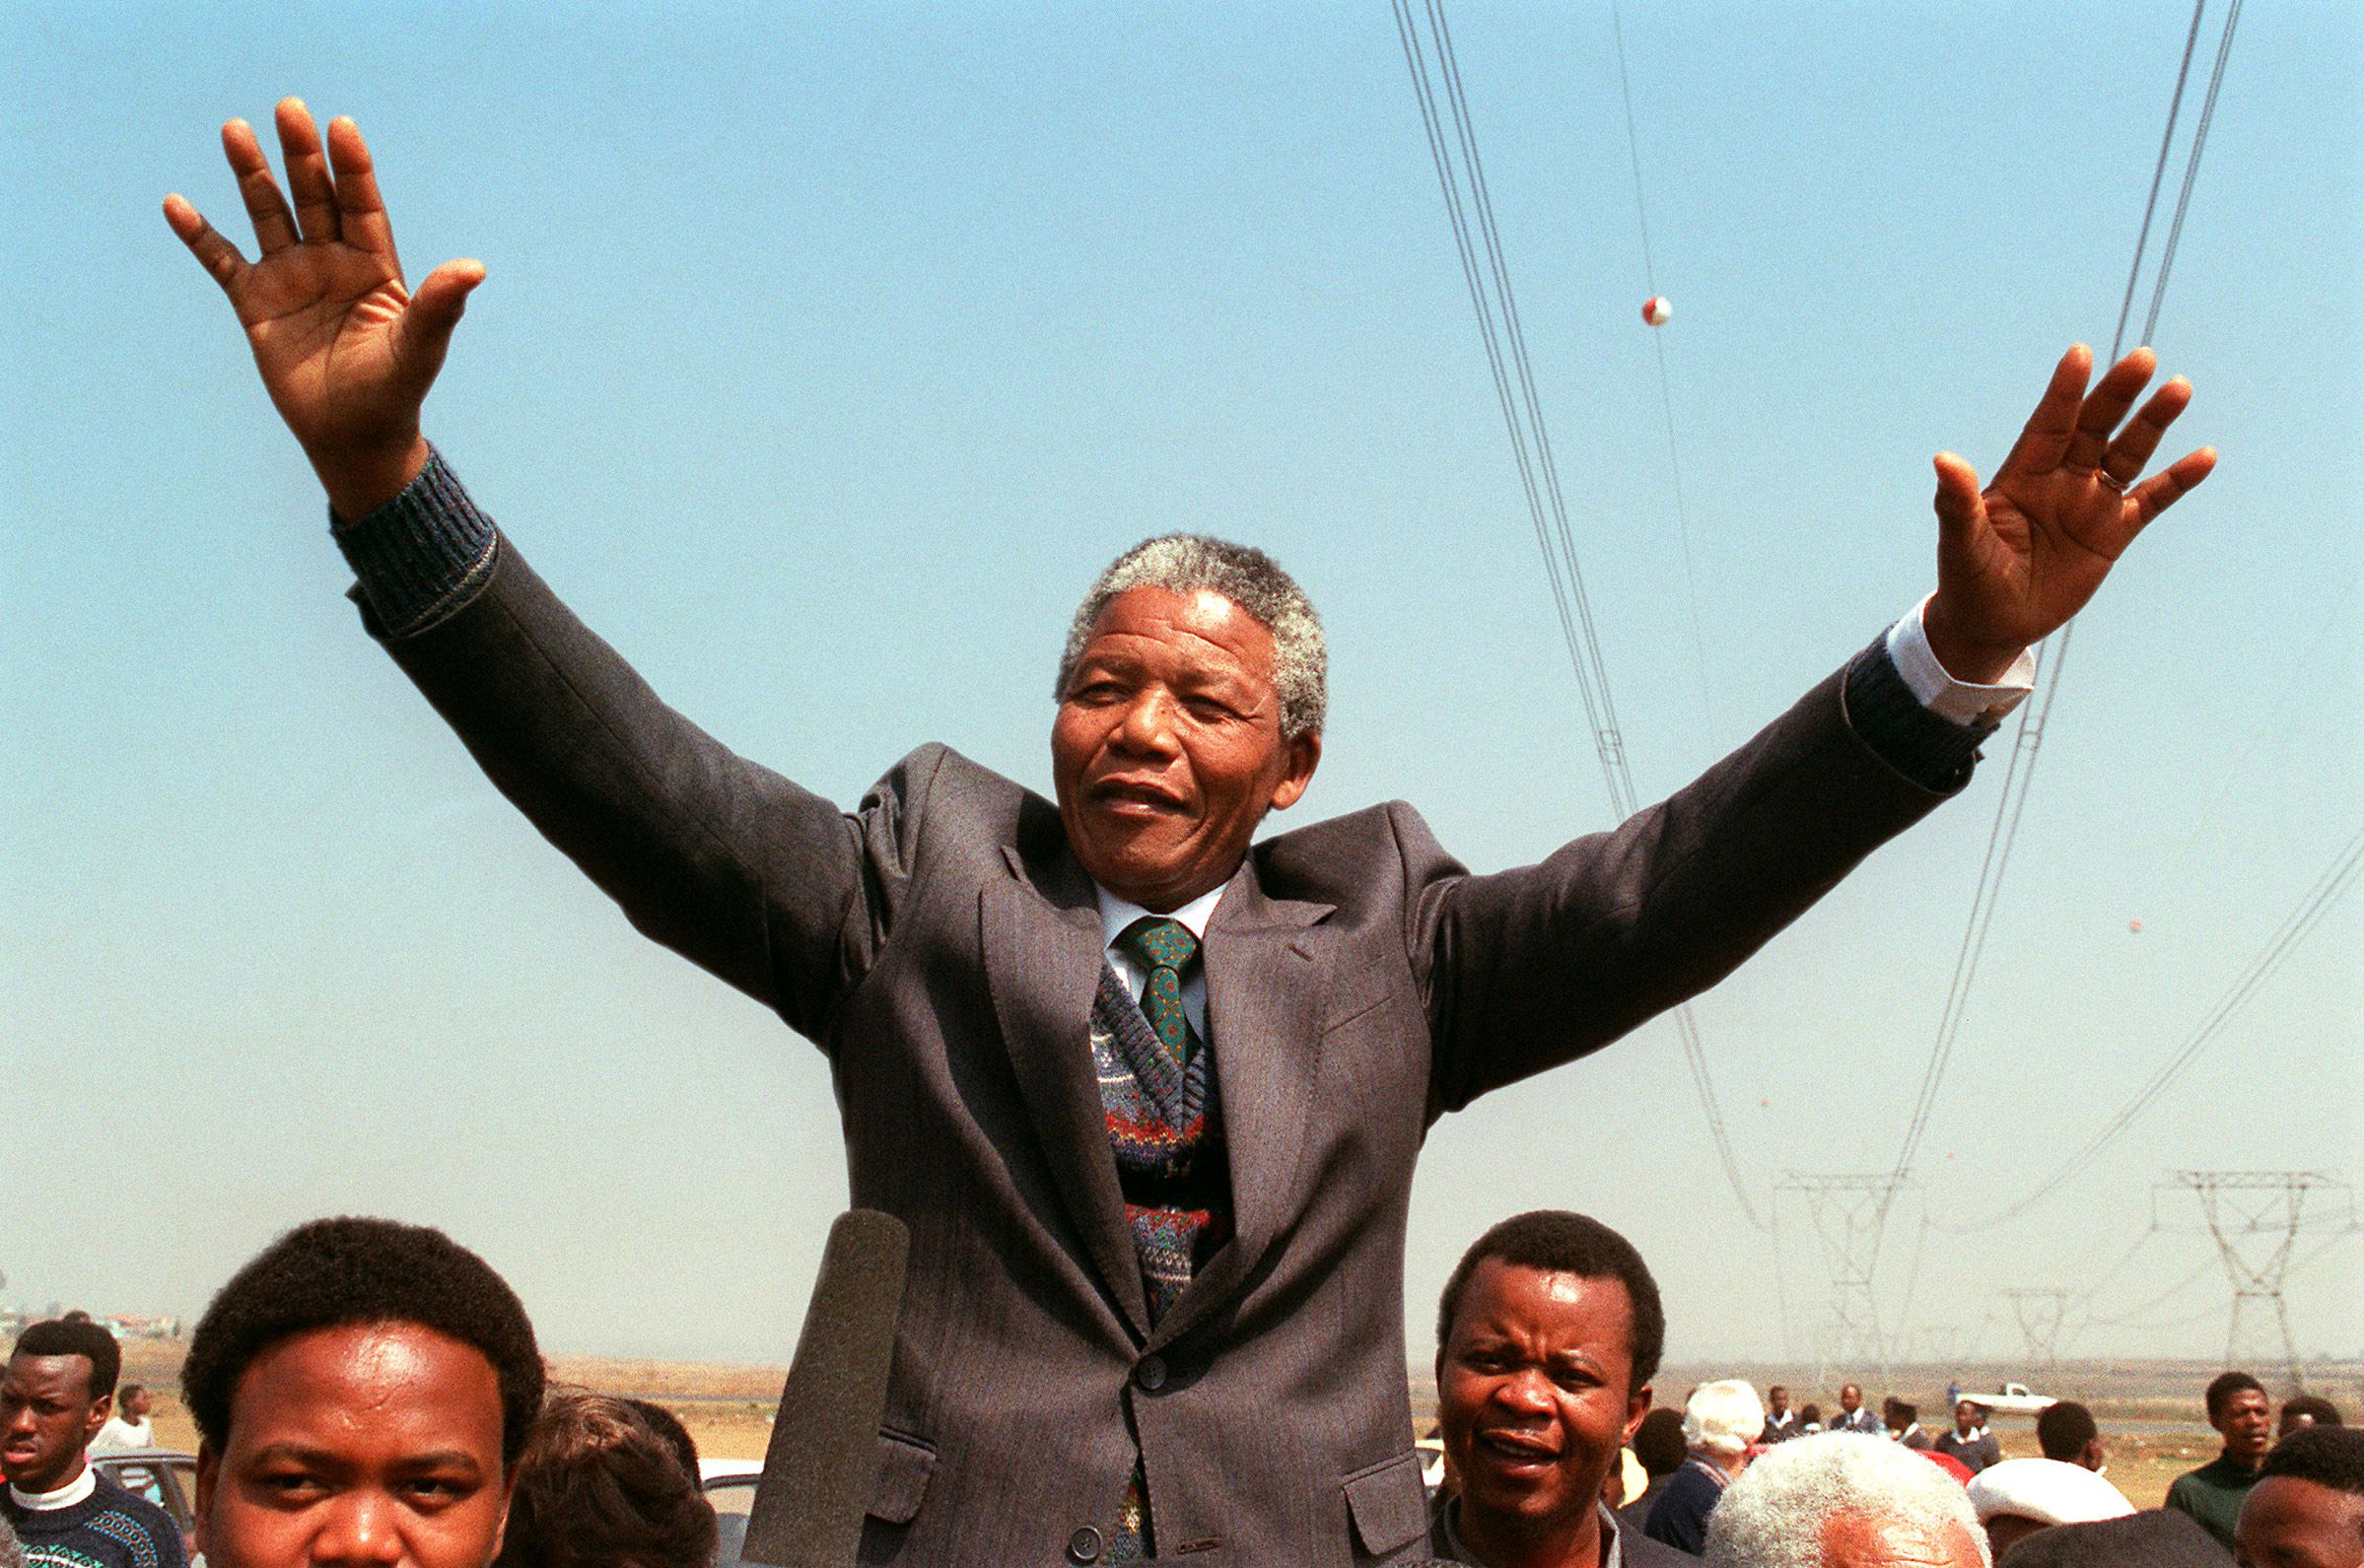 South African National Congress President Nelson Mandela addresses a crowd of residents from the Phola park squatter camp in Tokoza during his tour of townships. Sept. 5, 1990.